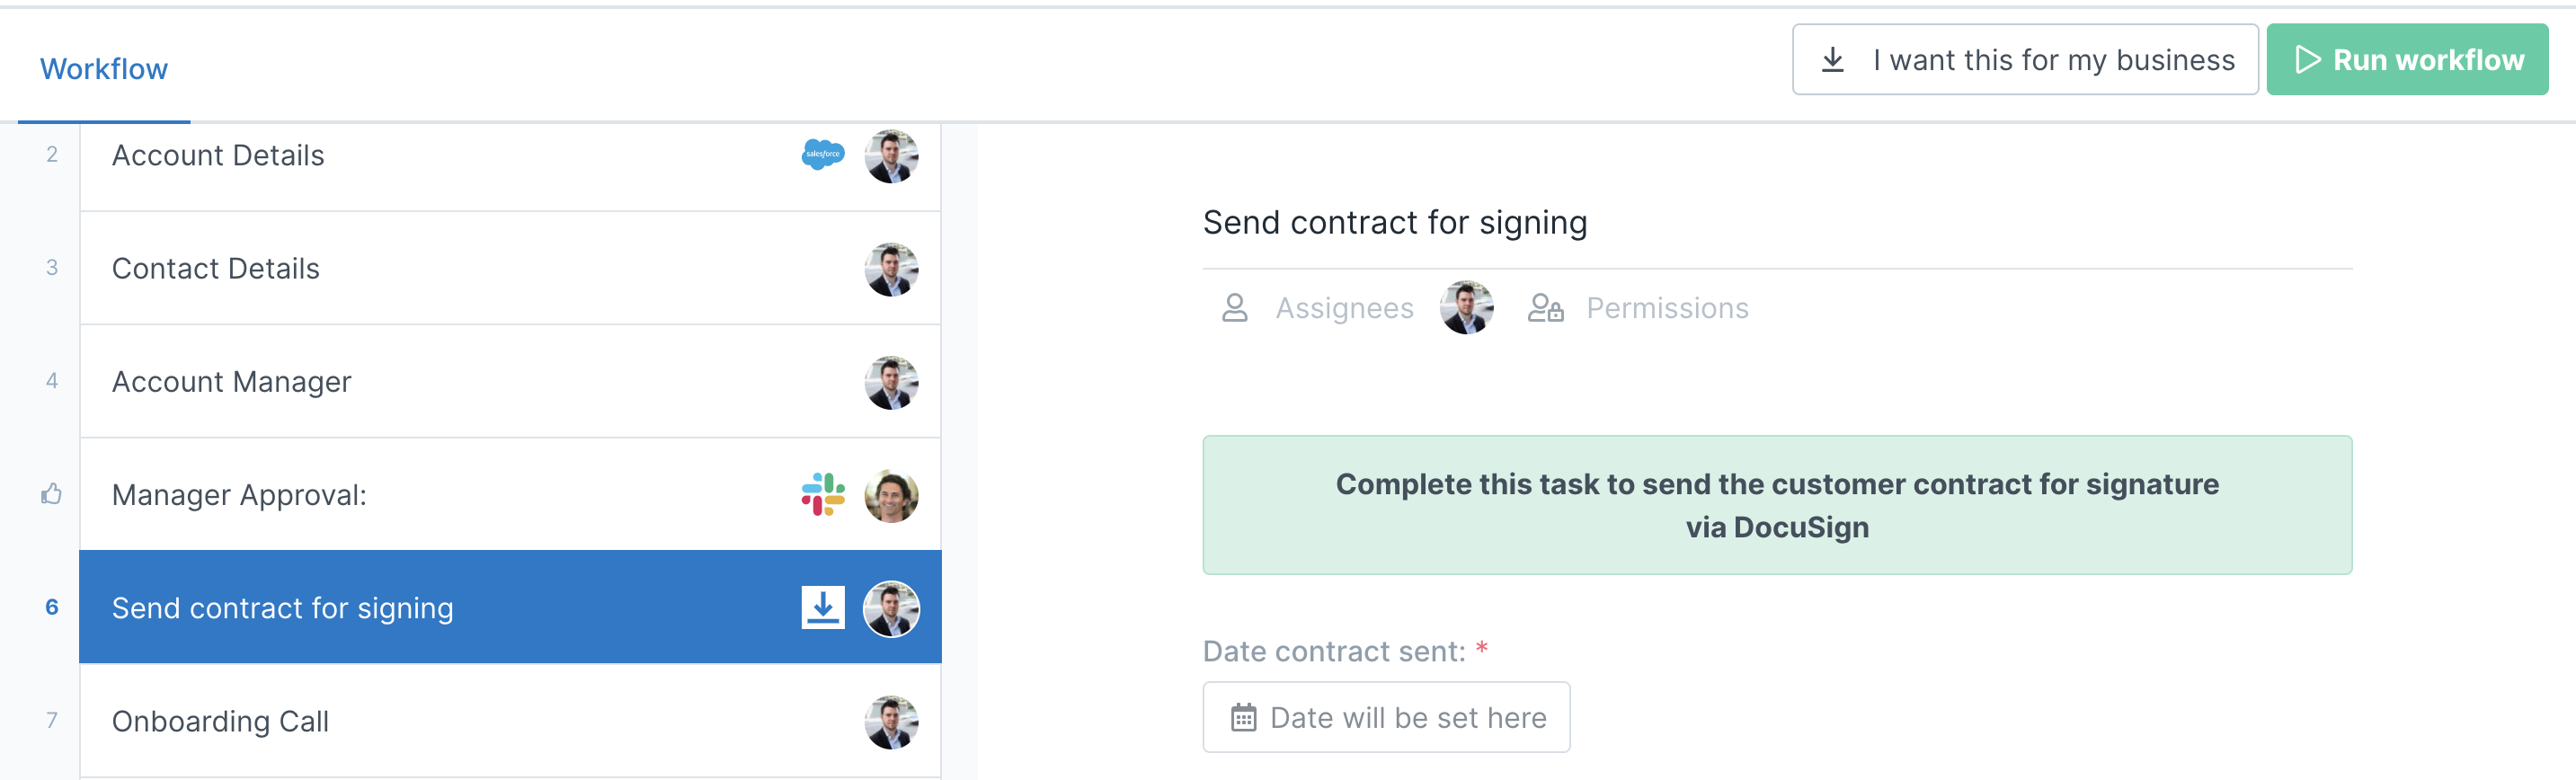 Send contract for signing with Docusign: